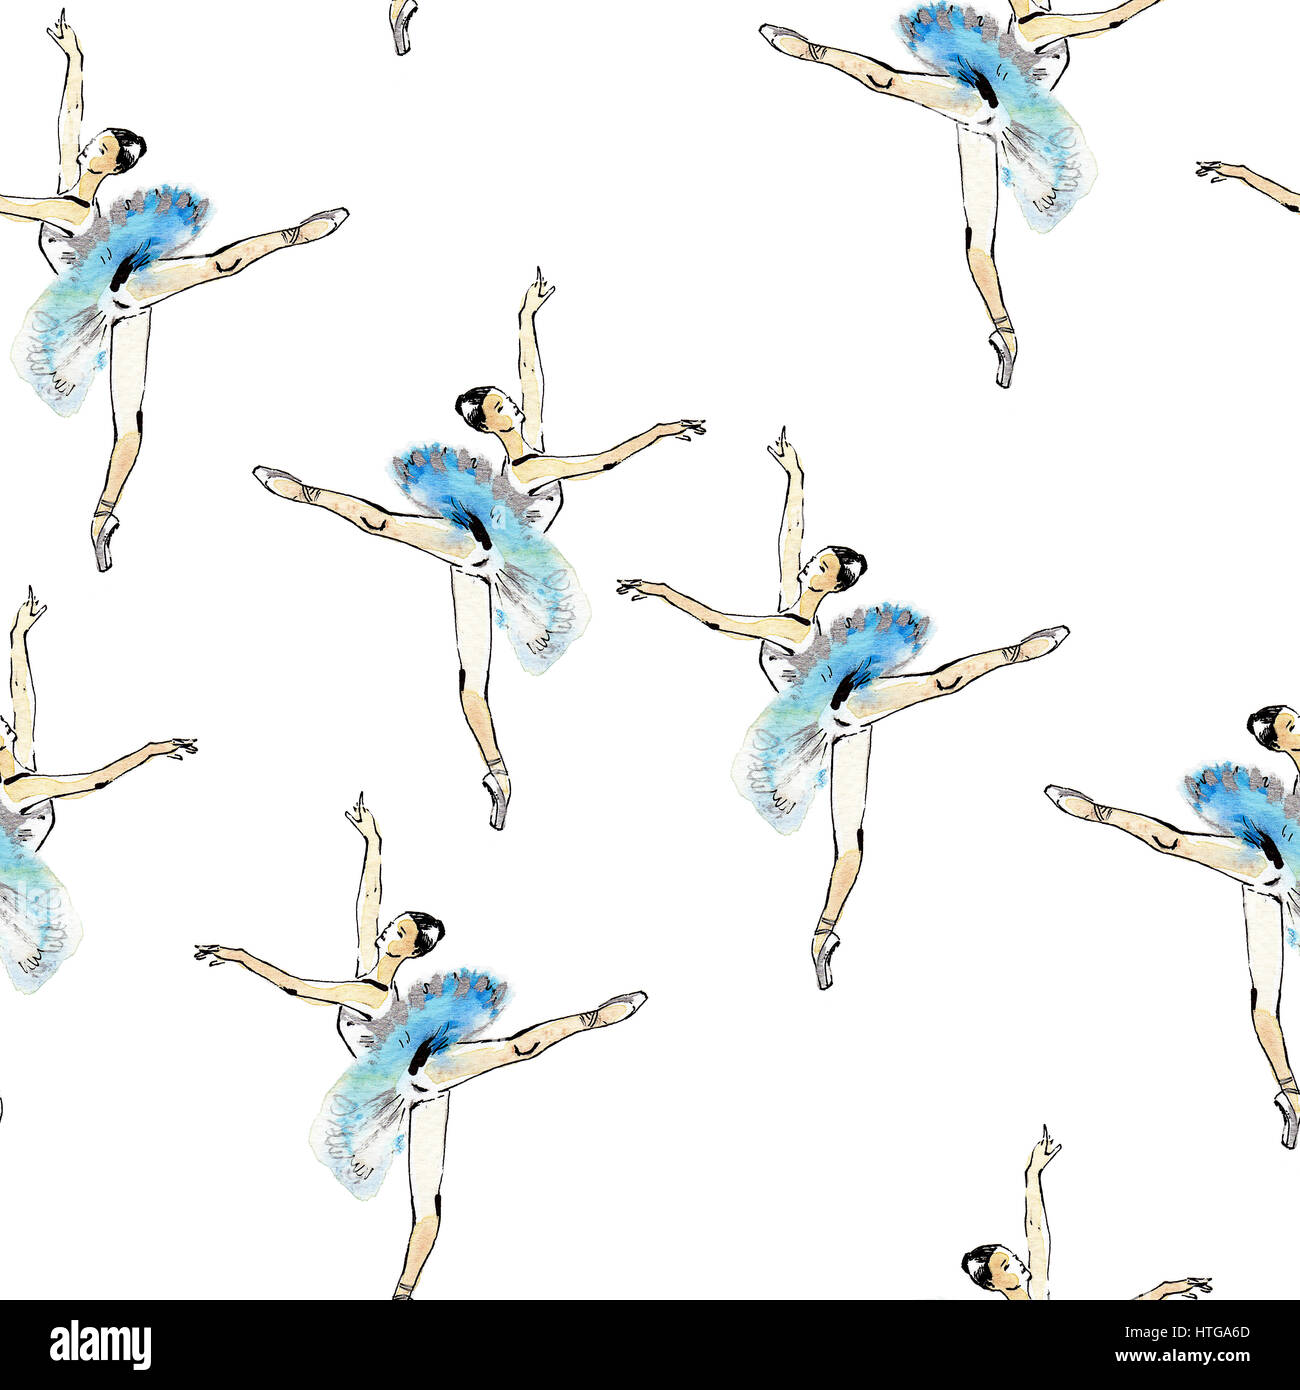 Seamless pattern of ballet dancers royalty free stock photography - Seamless Pattern Of Ballet Dancers In Arabesque Pose Black And Silver Drawing Watercolor Painting